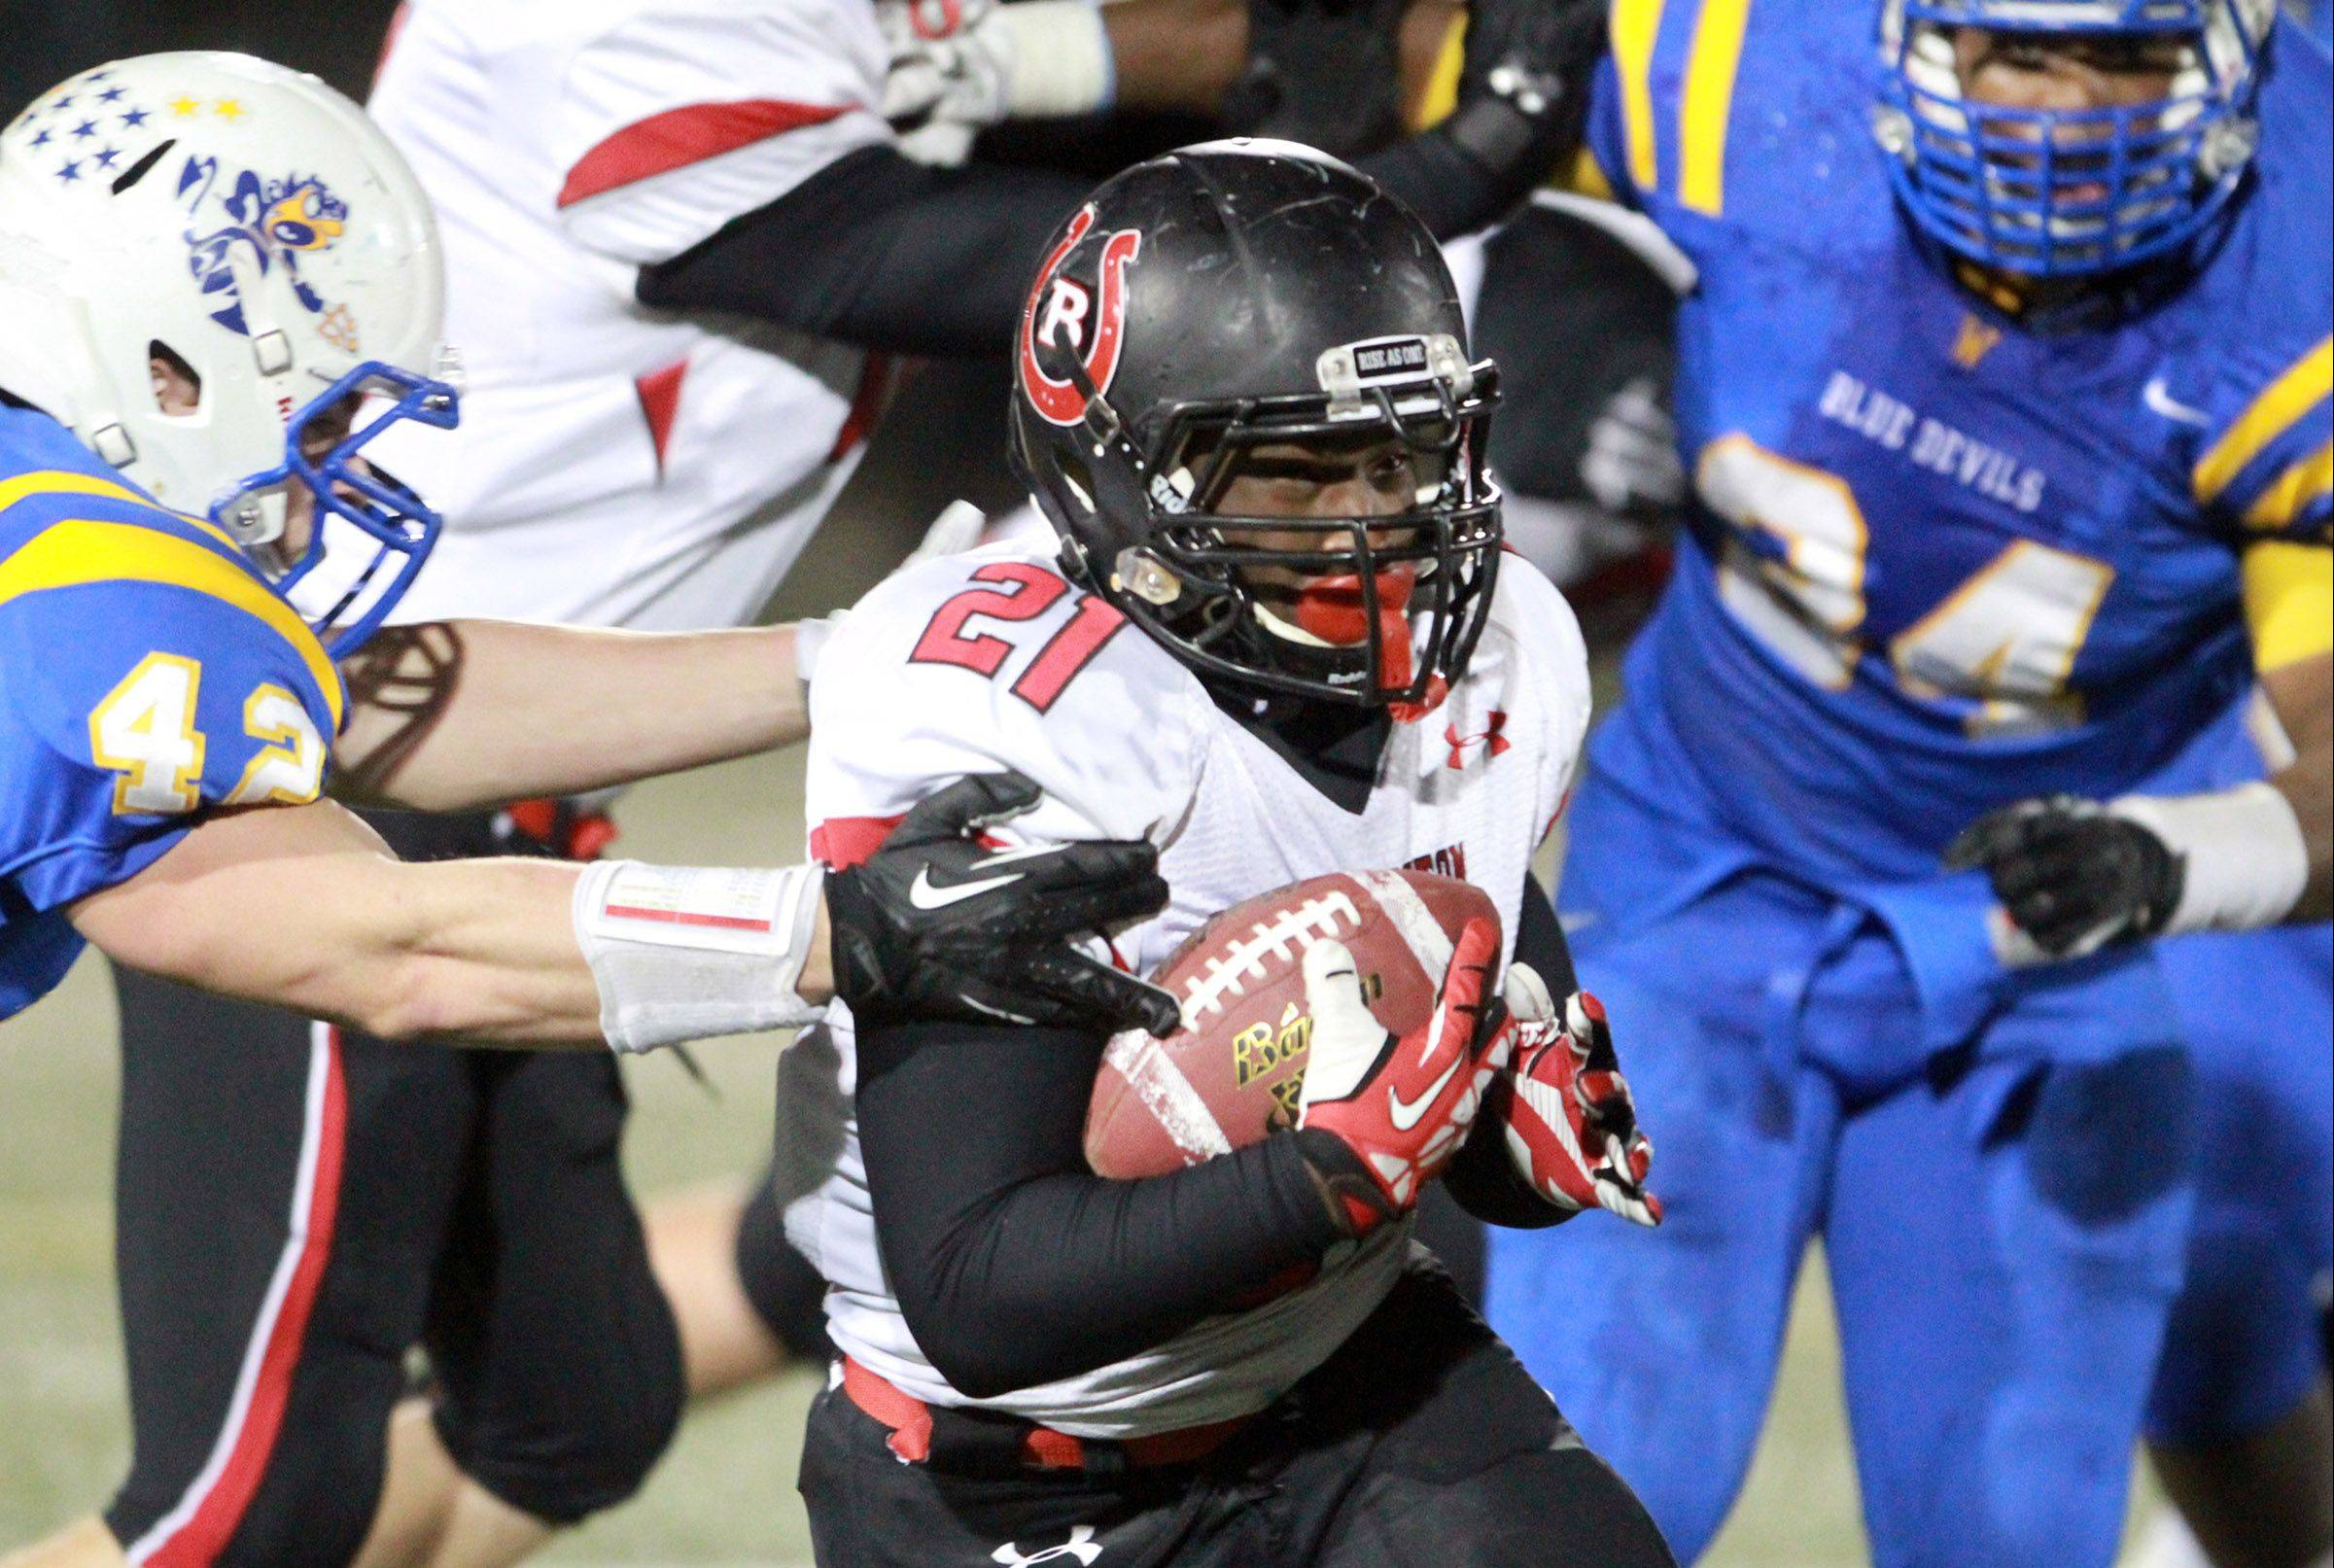 Barrington running back Nate King slips past Warren defender Lucus Fulton, left, in the first half of the Class 8A playoffs Saturday in Gurnee.